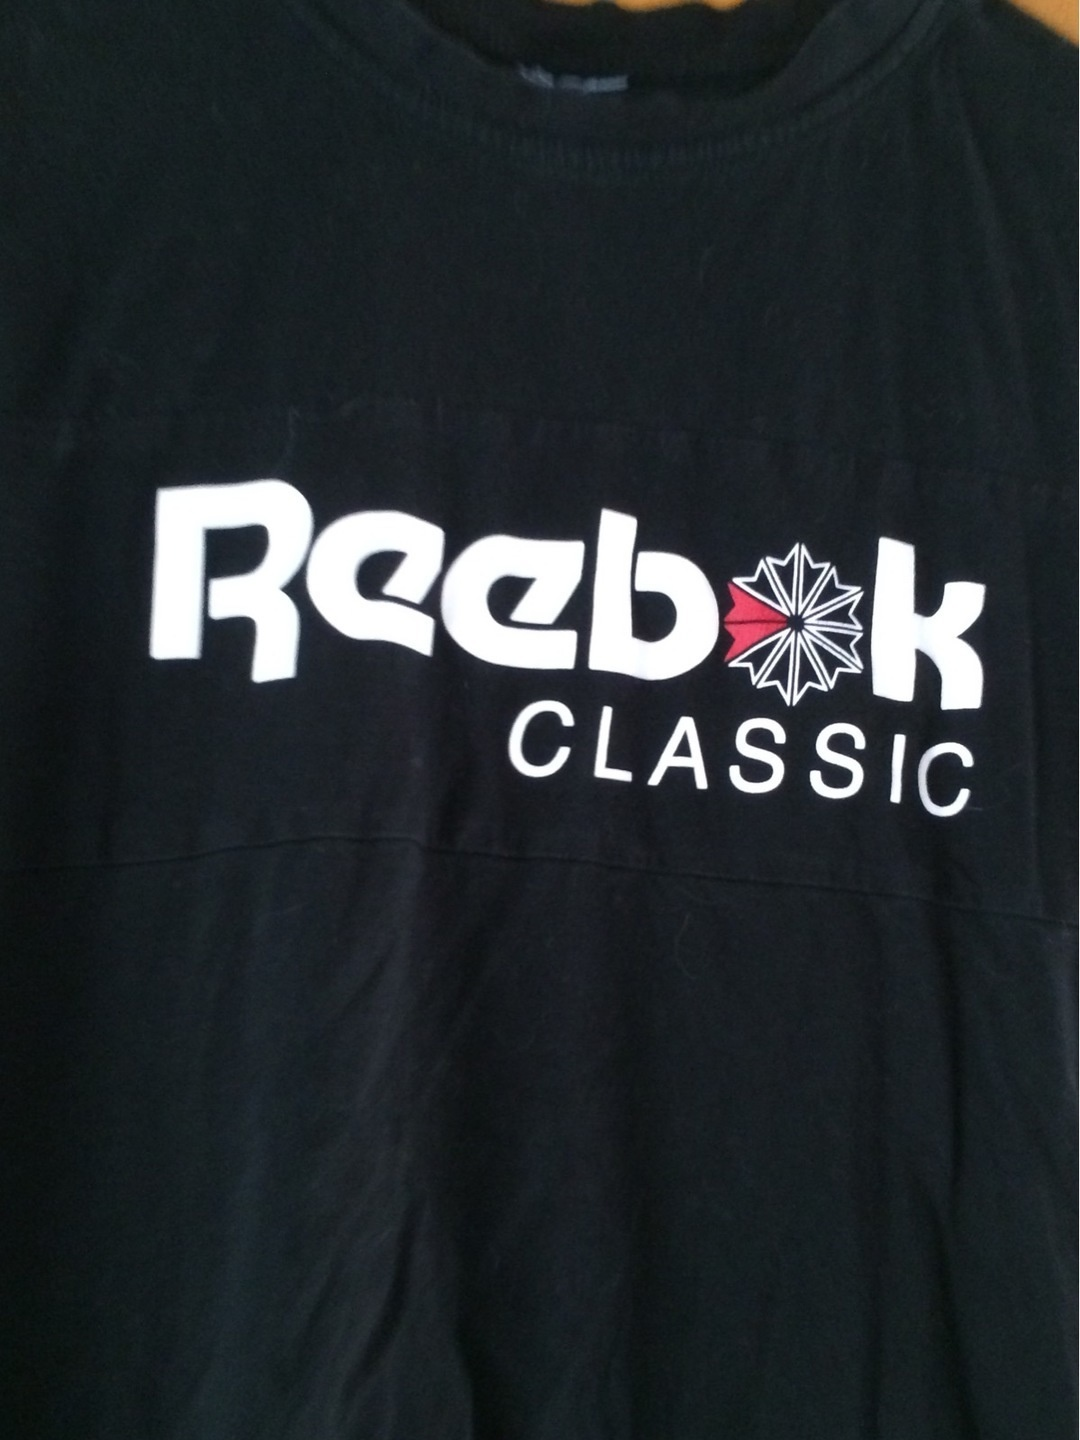 Women's tops & t-shirts - REEBOK photo 4